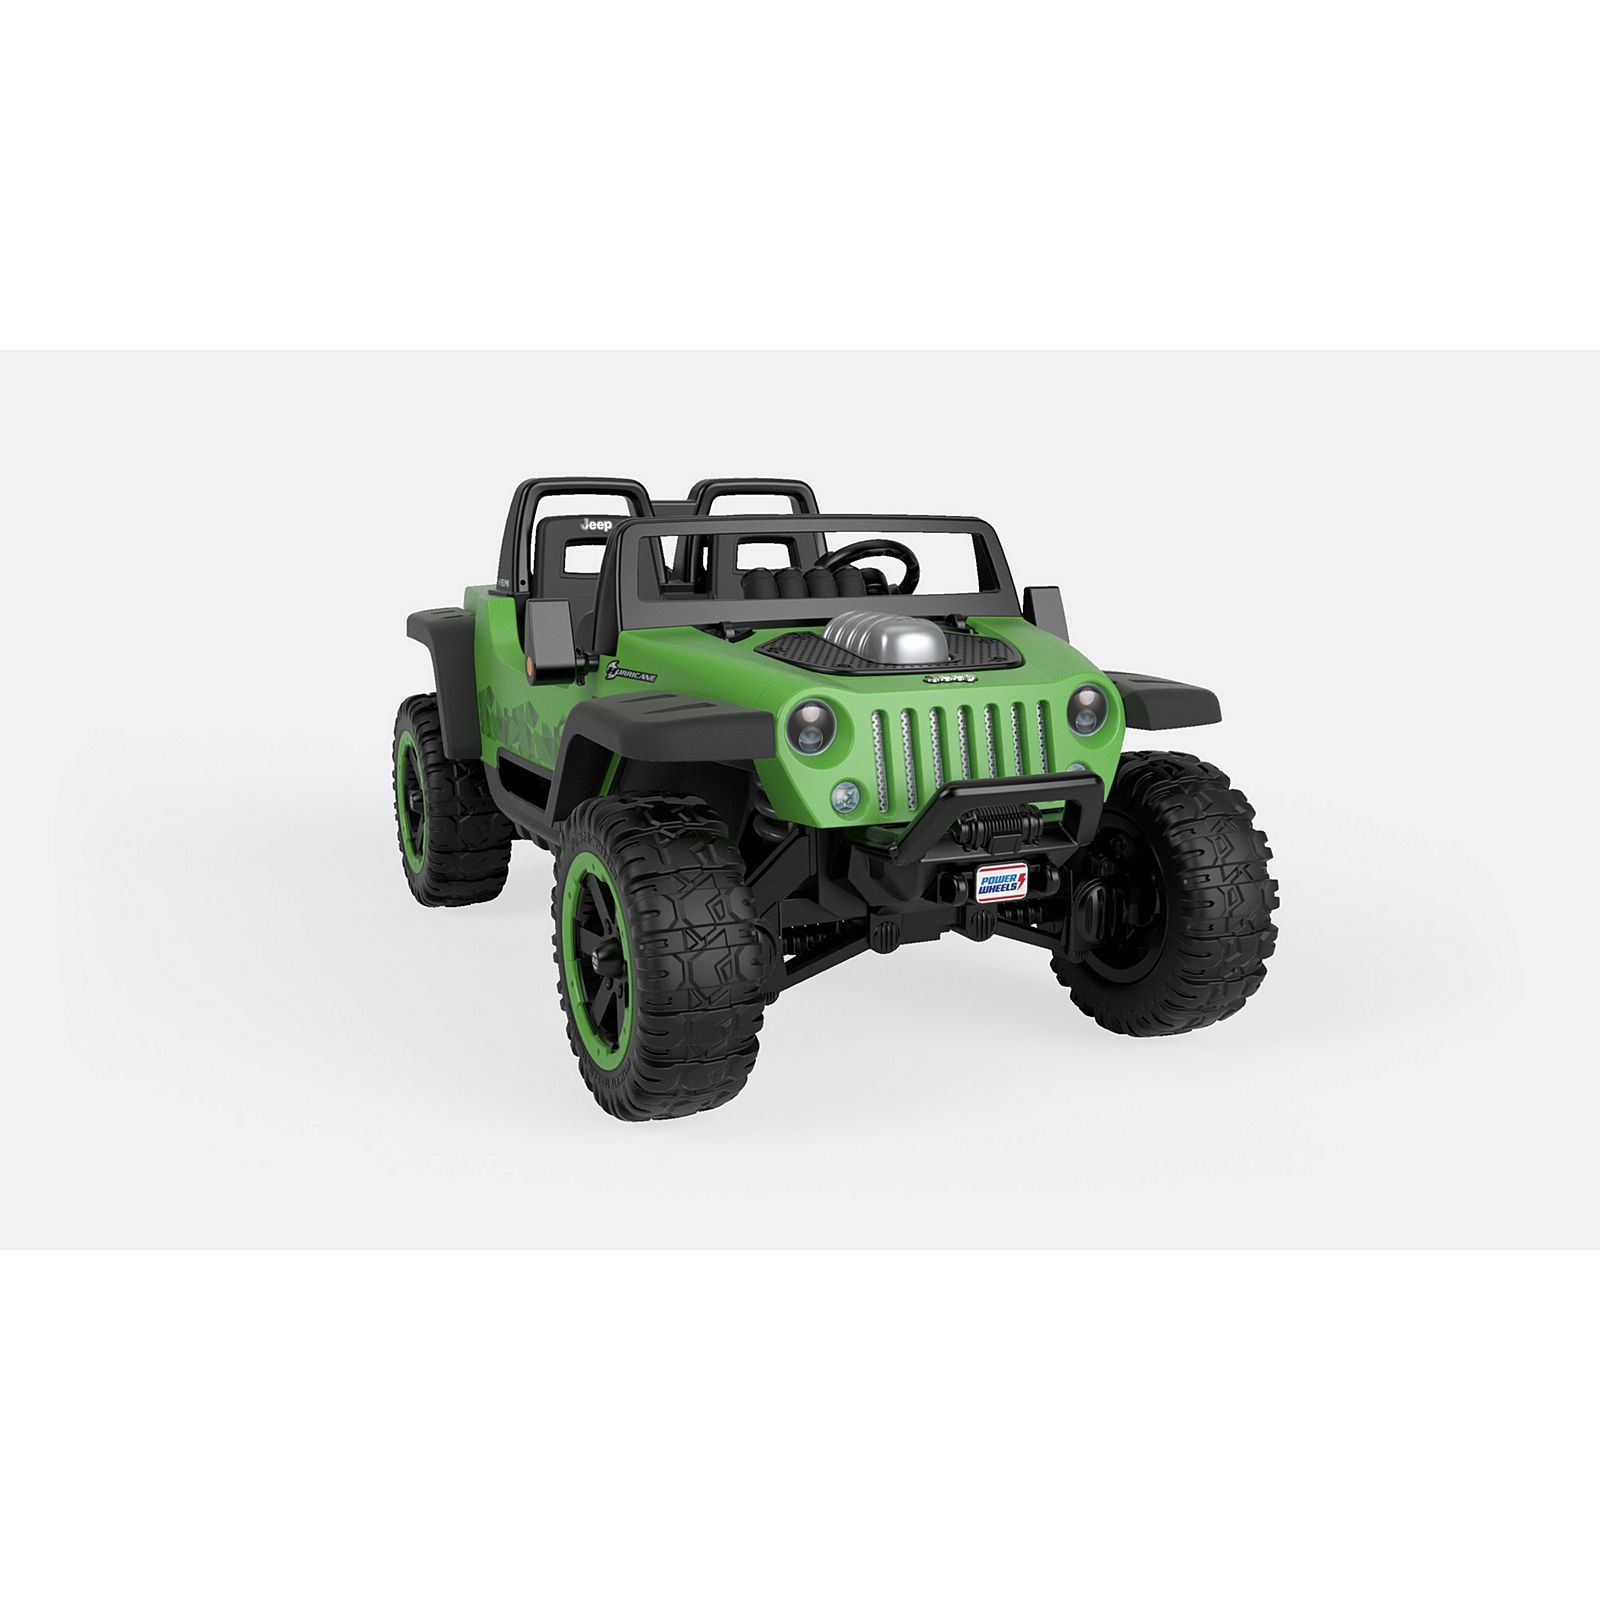 Check Out The Power Wheels Jeep Hurricane Extreme Fdg13 At The Official Fisher Price Website Expl Power Wheels Jeep Power Wheels Jeep Hurricane Power Wheels